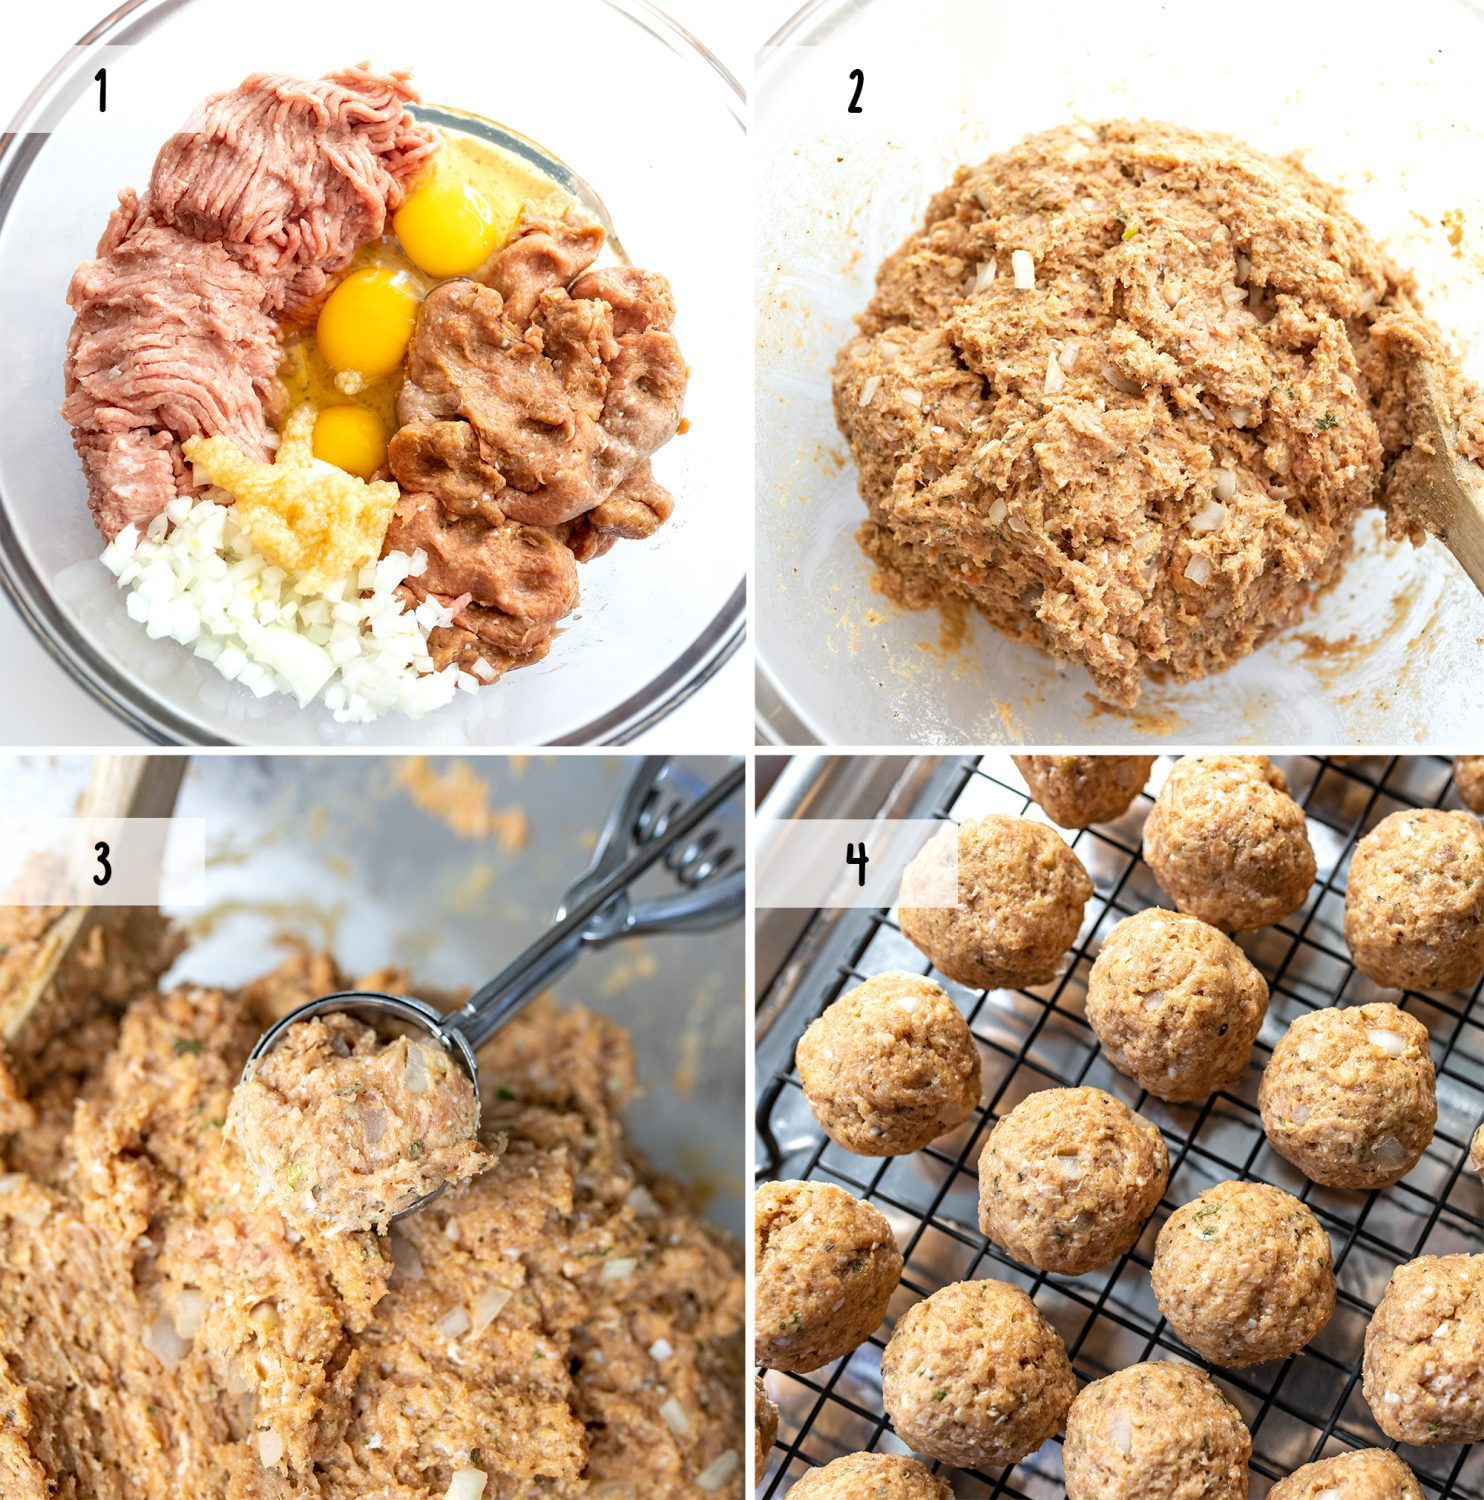 steps to make healthier oven-baked meatballs